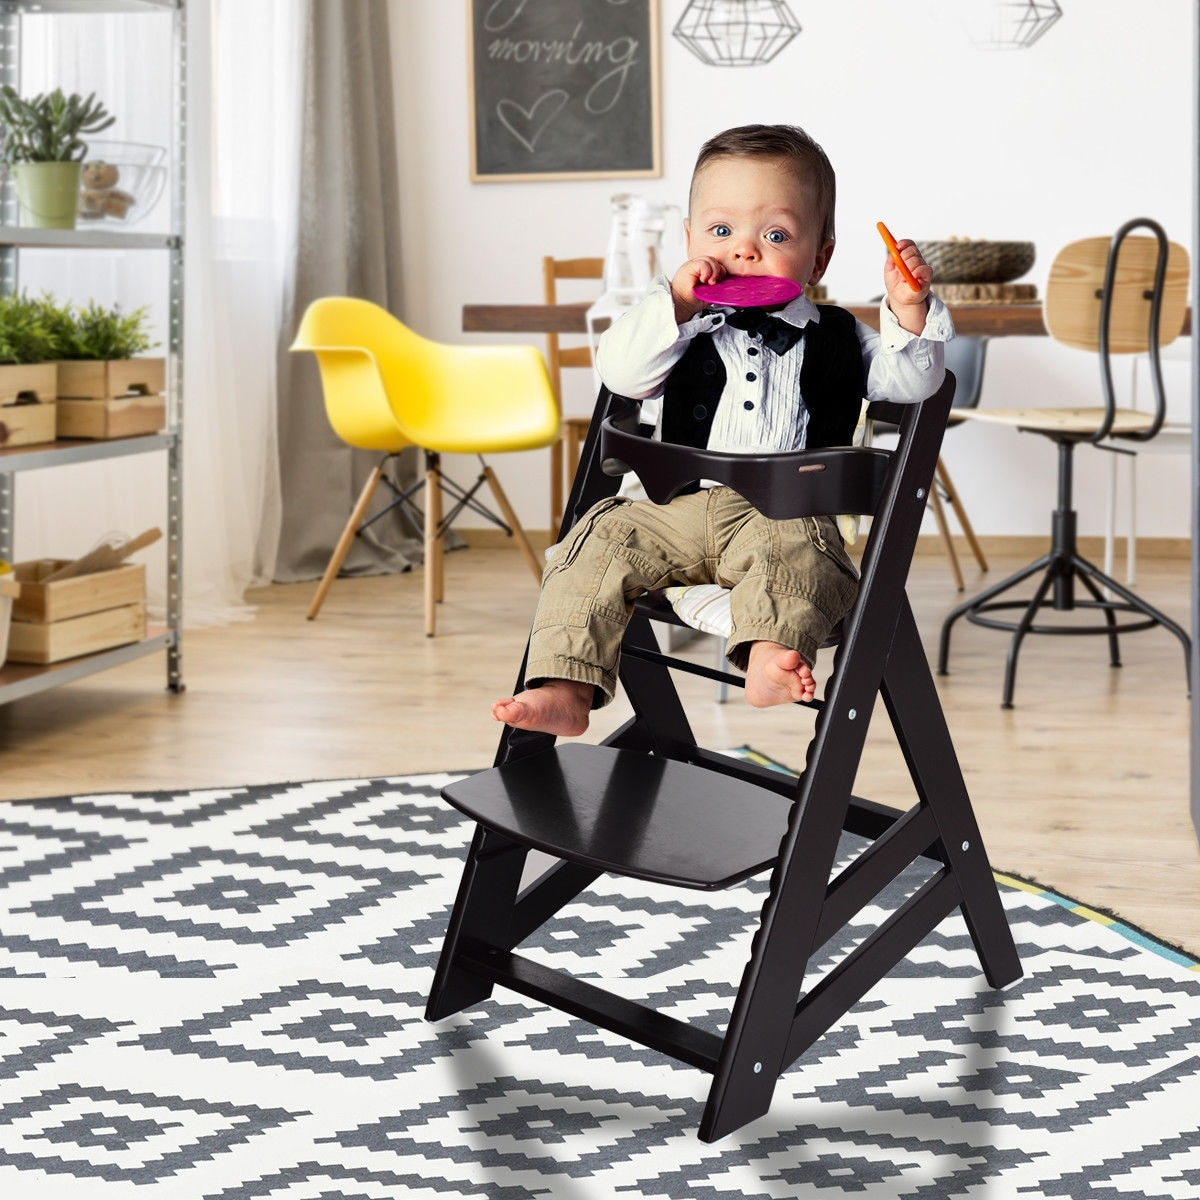 Shop Costway Baby Toddler Wooden Highchair Dining Chair Adjustable Height w/ Removeable Tray - Free Shipping Today - Overstock.com - 23081677 & Shop Costway Baby Toddler Wooden Highchair Dining Chair Adjustable ...